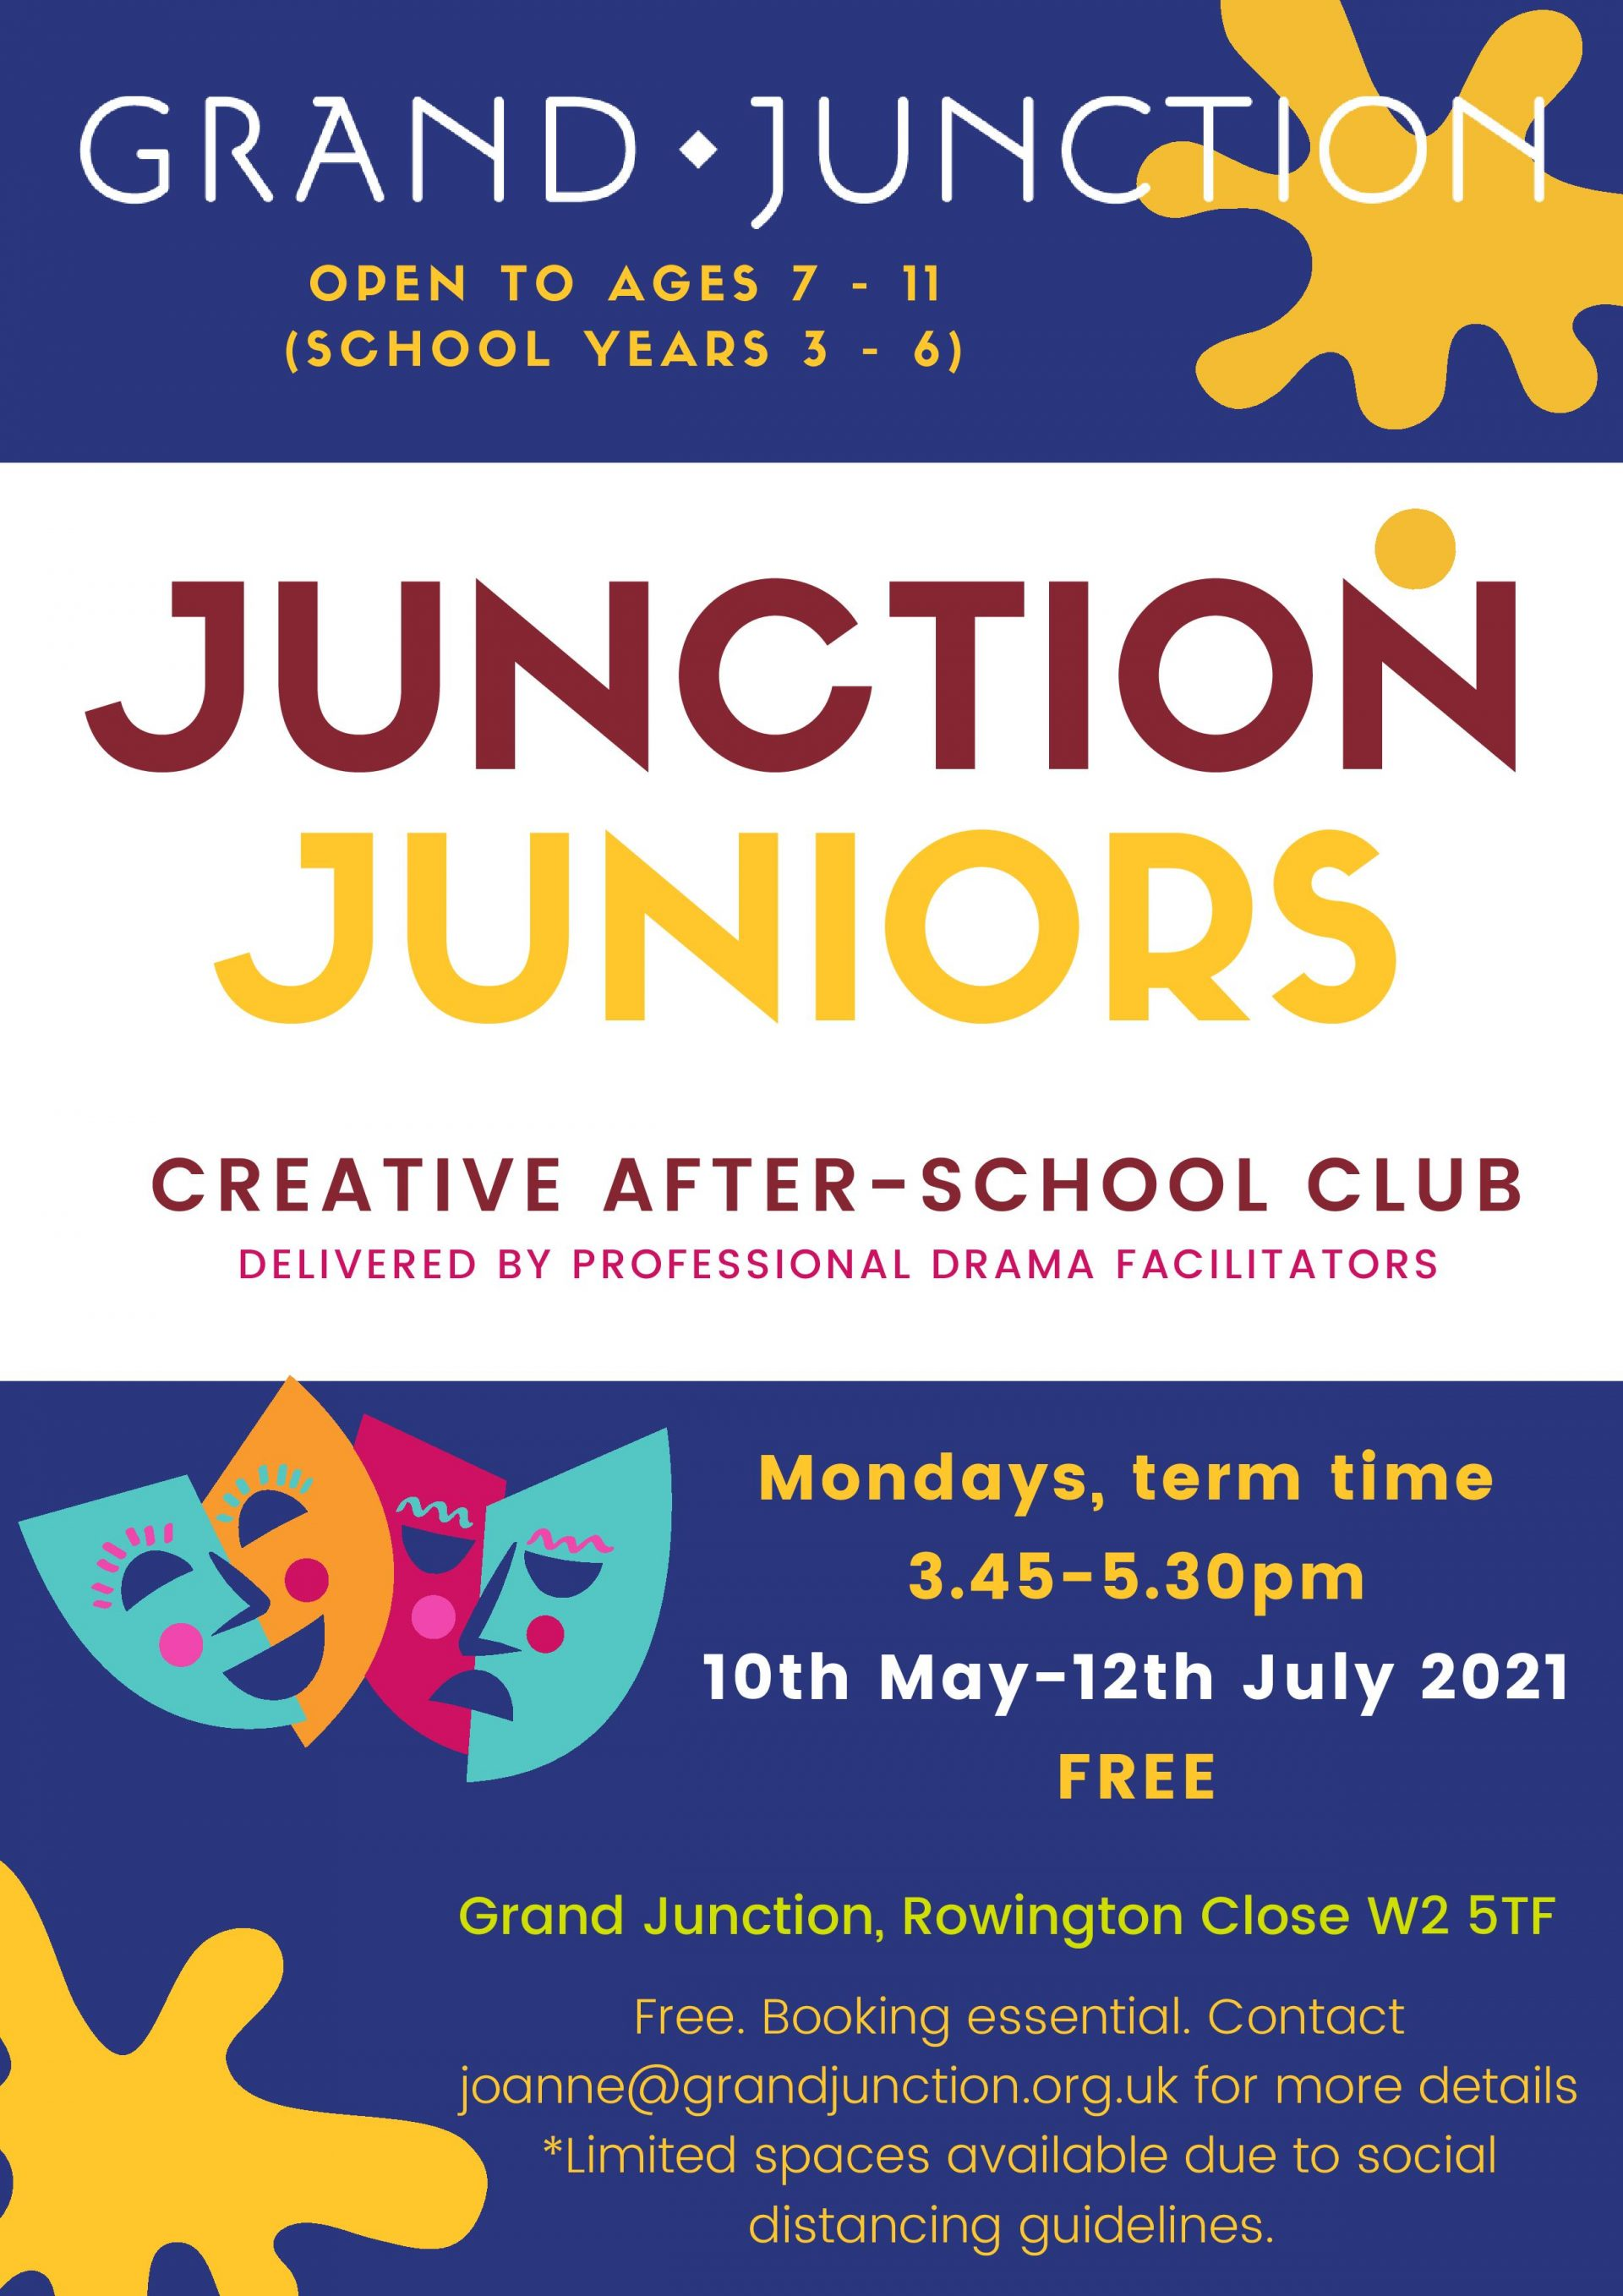 JUNCTION JUNIORS Mondays, term time 3.45 - 5.30 pm 10th May - 12th July 2021 FREE OPEN TO AGES 7 - 11 (SCHOOL YEARS 3 - 6) Free. Booking essential. Contactjoanne@grandjunctionorg.uk for more details *Limited spaces available due to social distancing guidelines. CREATIVE AFTER-SCHOOL CLUB DELIVERED BY PROFESSIONAL DRAMA FACILITATORS Grand Junction, Rowington Close W2 5TF